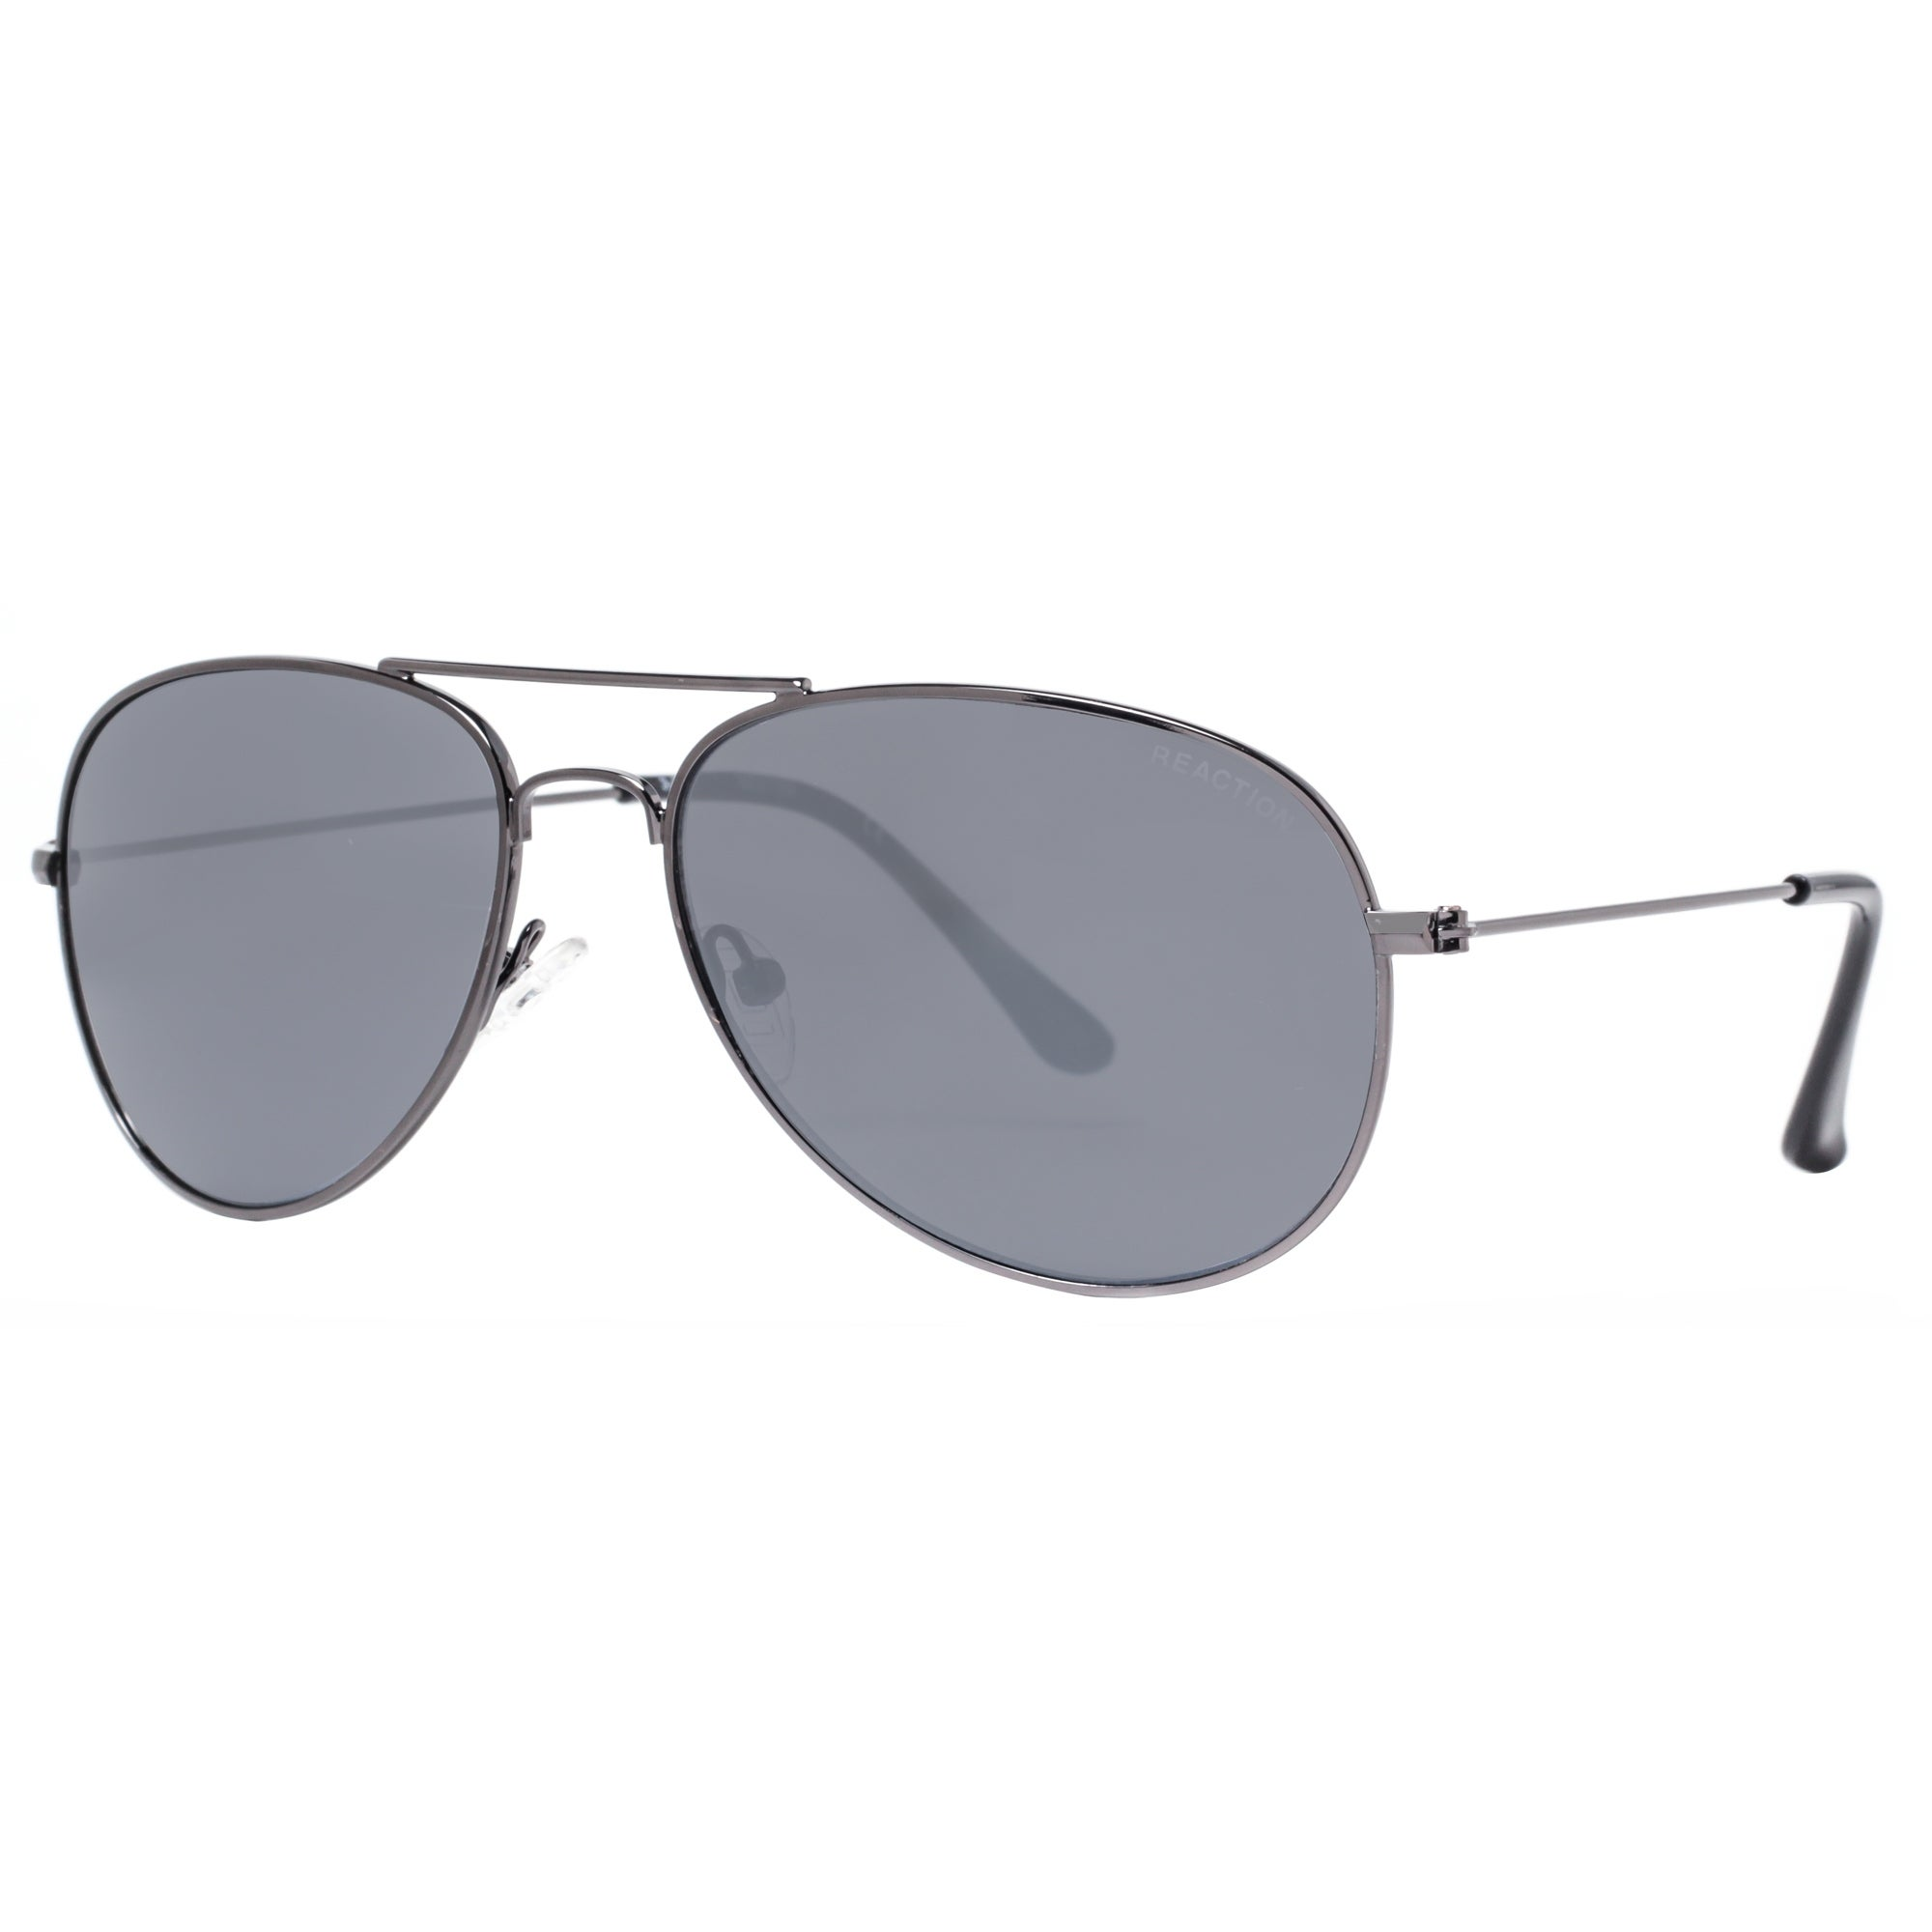 58764470b2 Shop Kenneth Cole Reaction KC1248 5908C Men s Gunmetal Smoke Black Aviator  Sunglasses - 59mm-15mm-140mm - Free Shipping On Orders Over  45 - Overstock  - ...